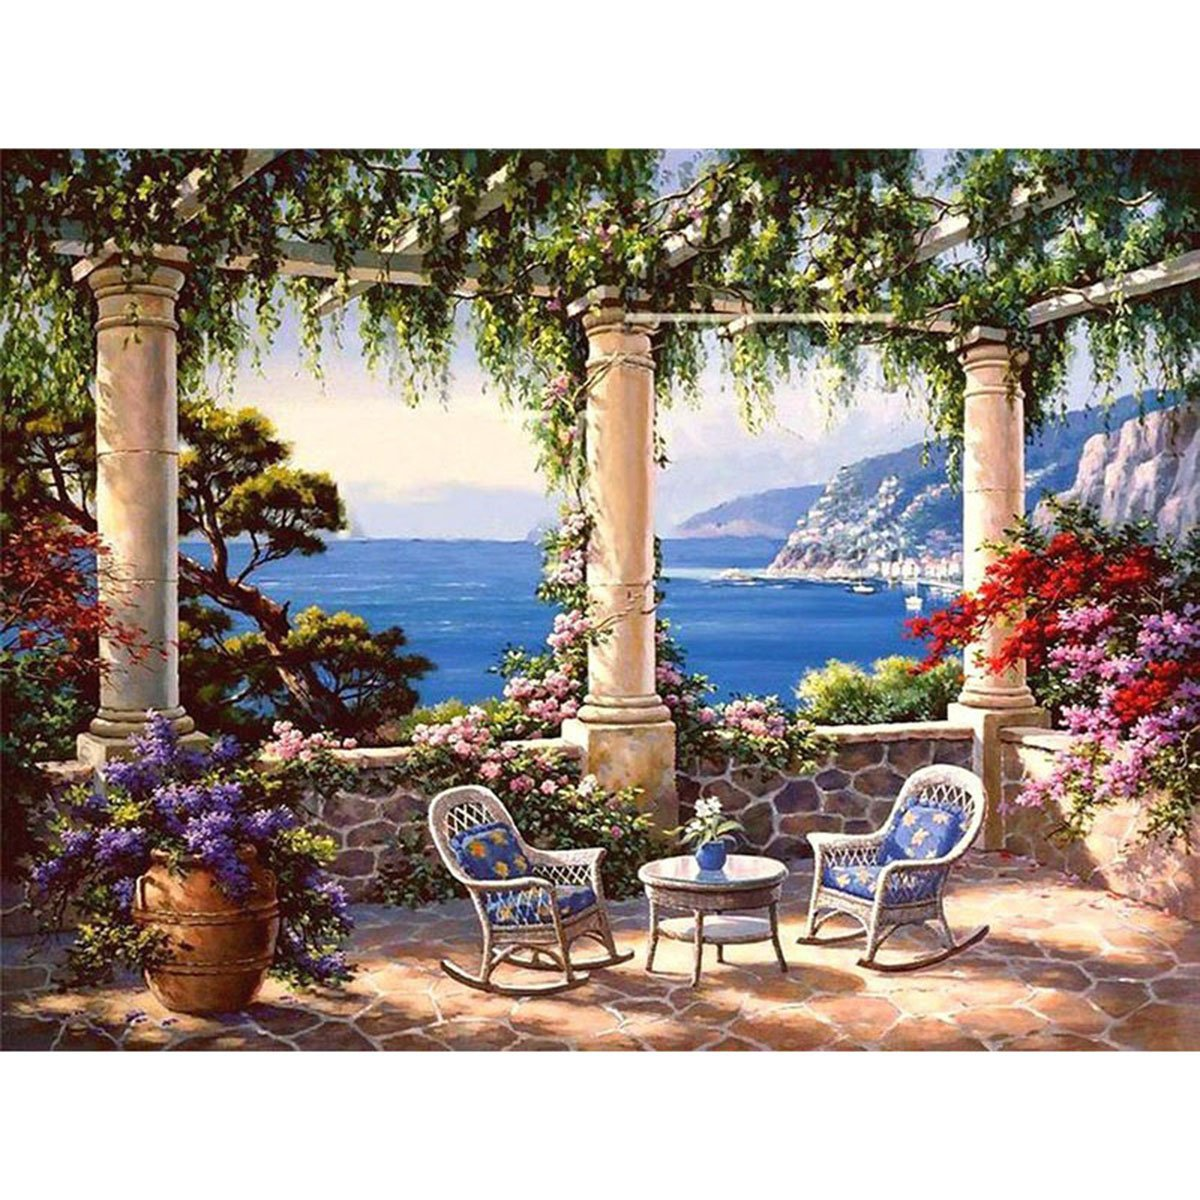 Shukqueen Diy Oil Painting, Adult's Paint by Number Kits, Acrylic Painting Garden Balcony by the Sea 16X20 Inch (Framed Canvas)